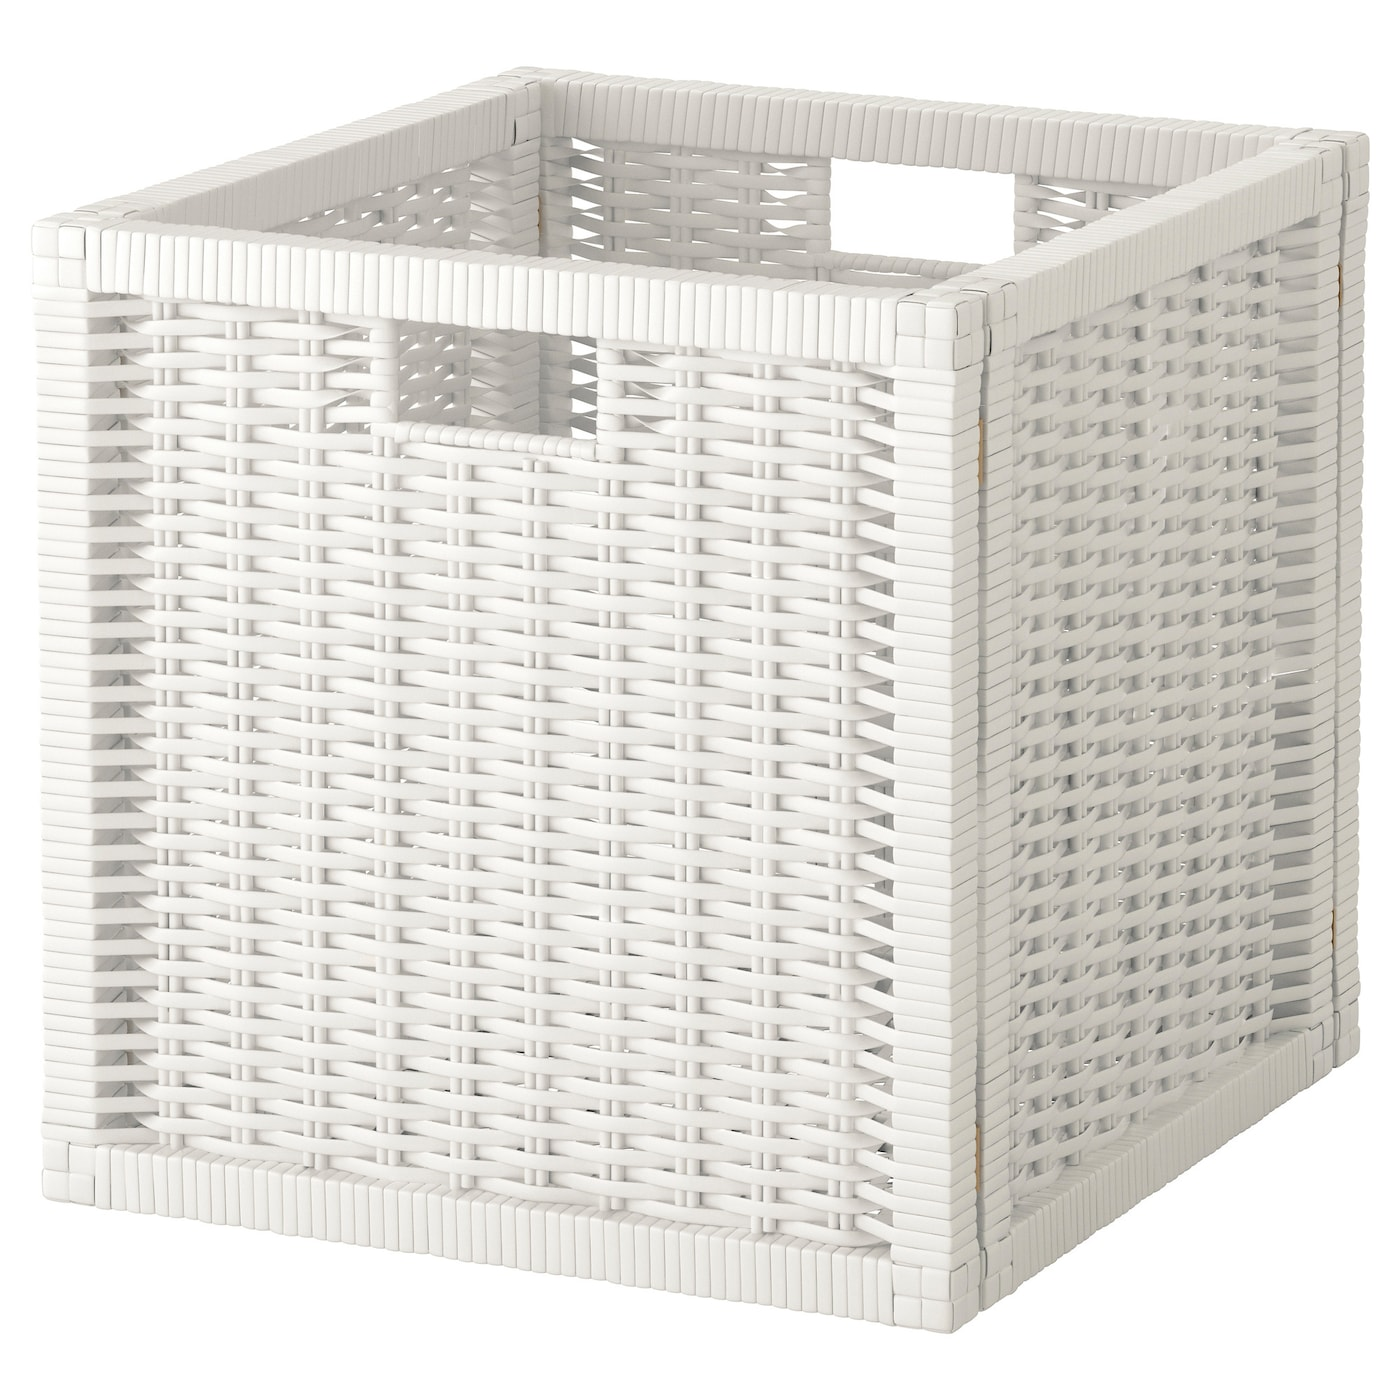 Wicker storage basket home storage baskets melbury rectangular wicker - Perfect Ikea Brans Basket Perfect For Newspapers Photos Or Other Memorabilia With Storage Baskets